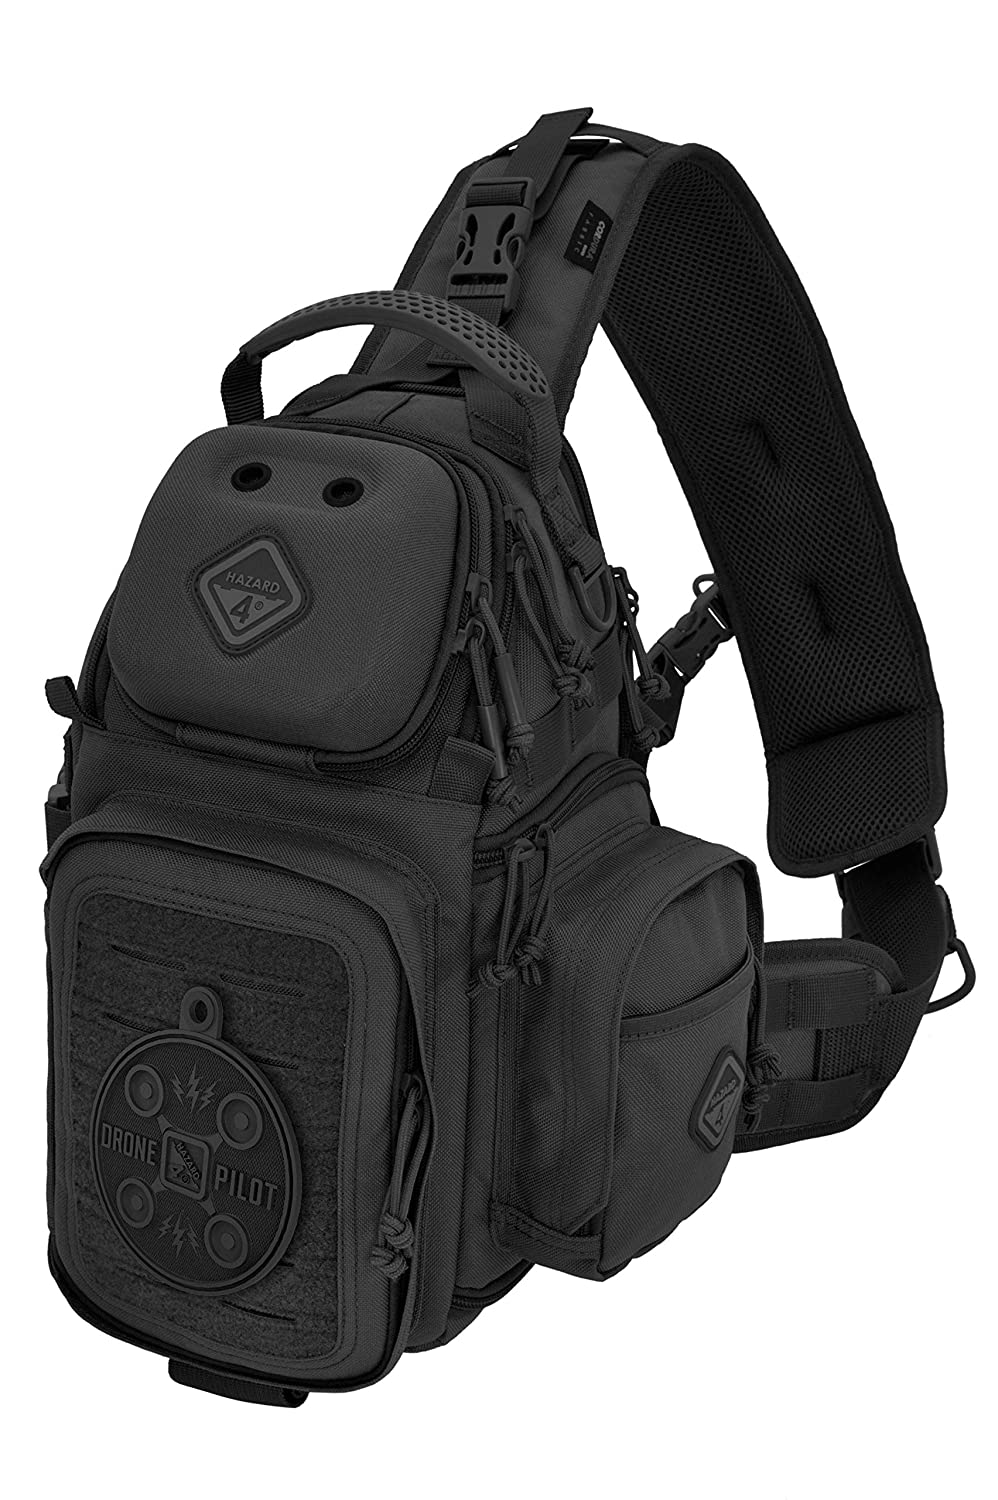 Hazard 4 Freelance Drone Edition Sling Pack